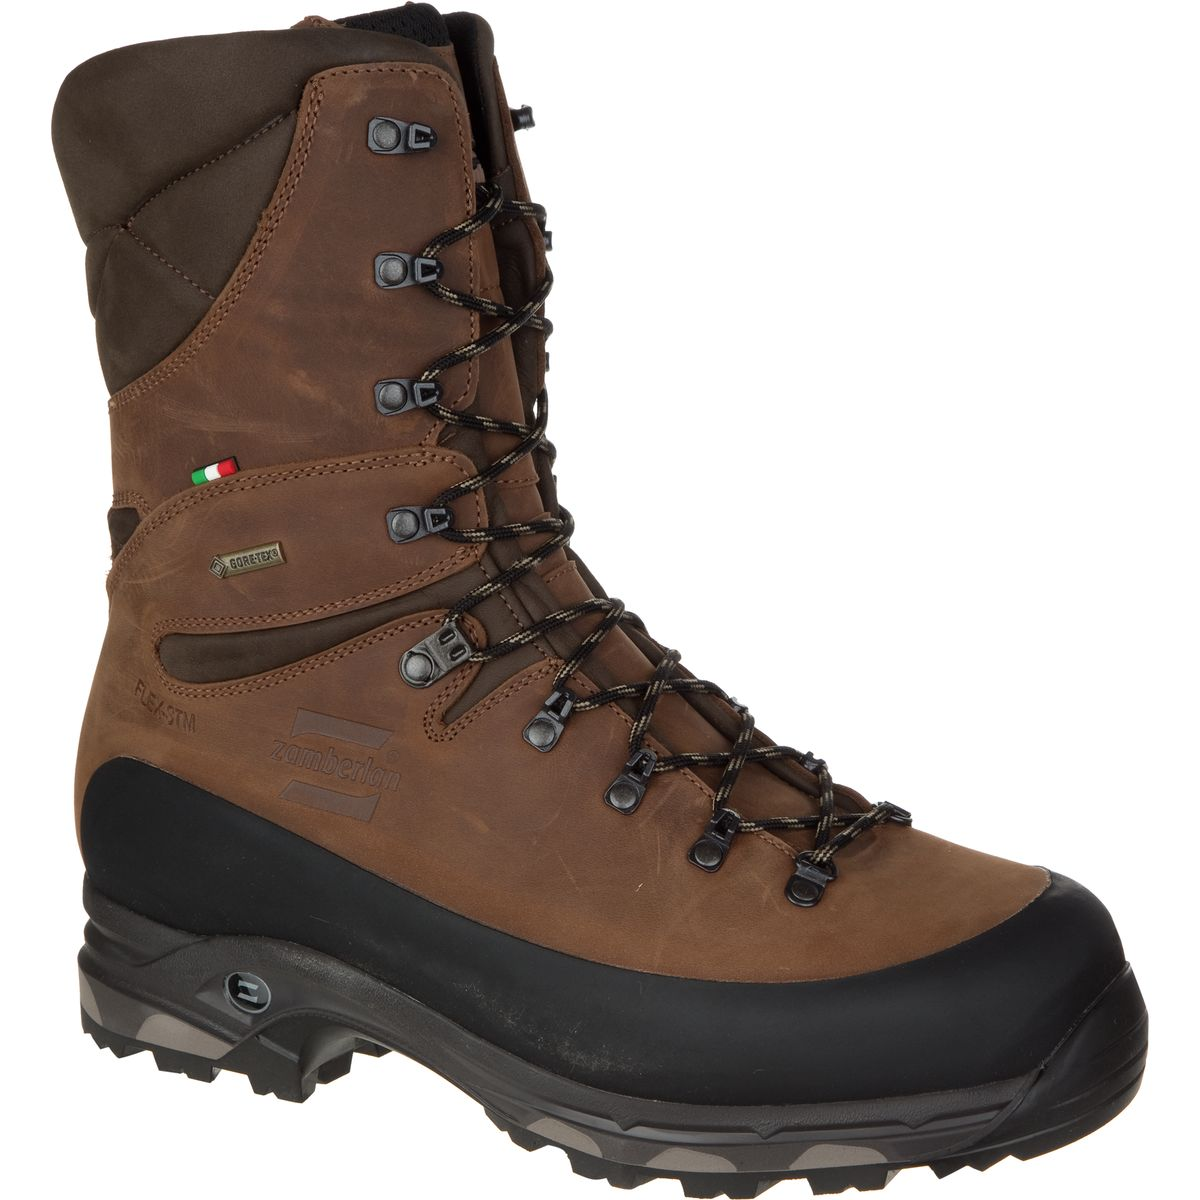 photo: Zamberlan 1009 Vioz Top GT RR backpacking boot